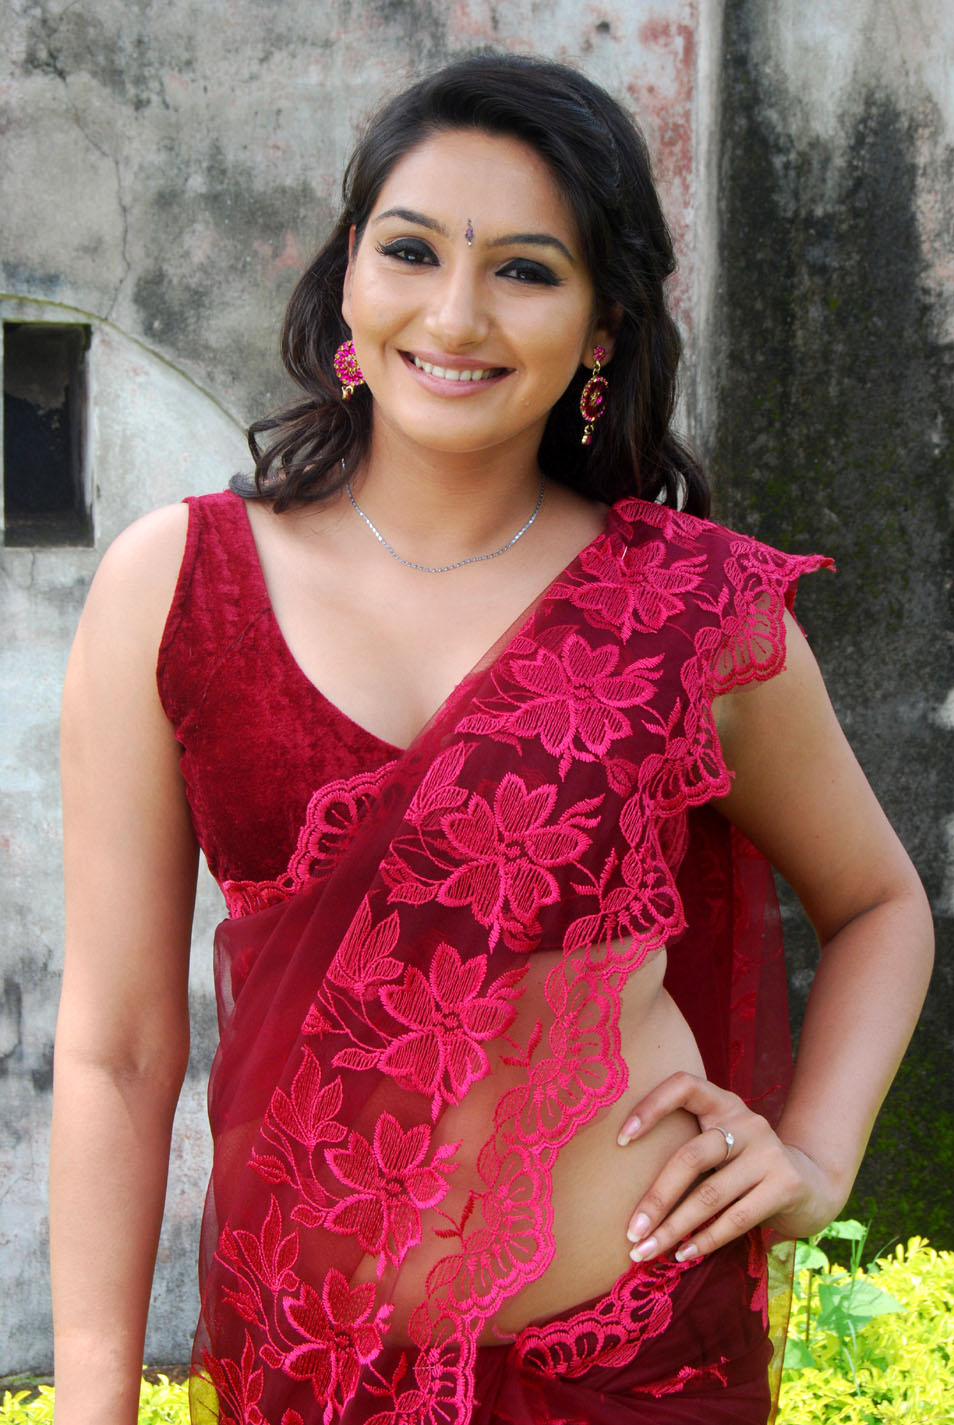 Indian Movie Actress Kannada Actress Ragini Dwivedi Hot -8313